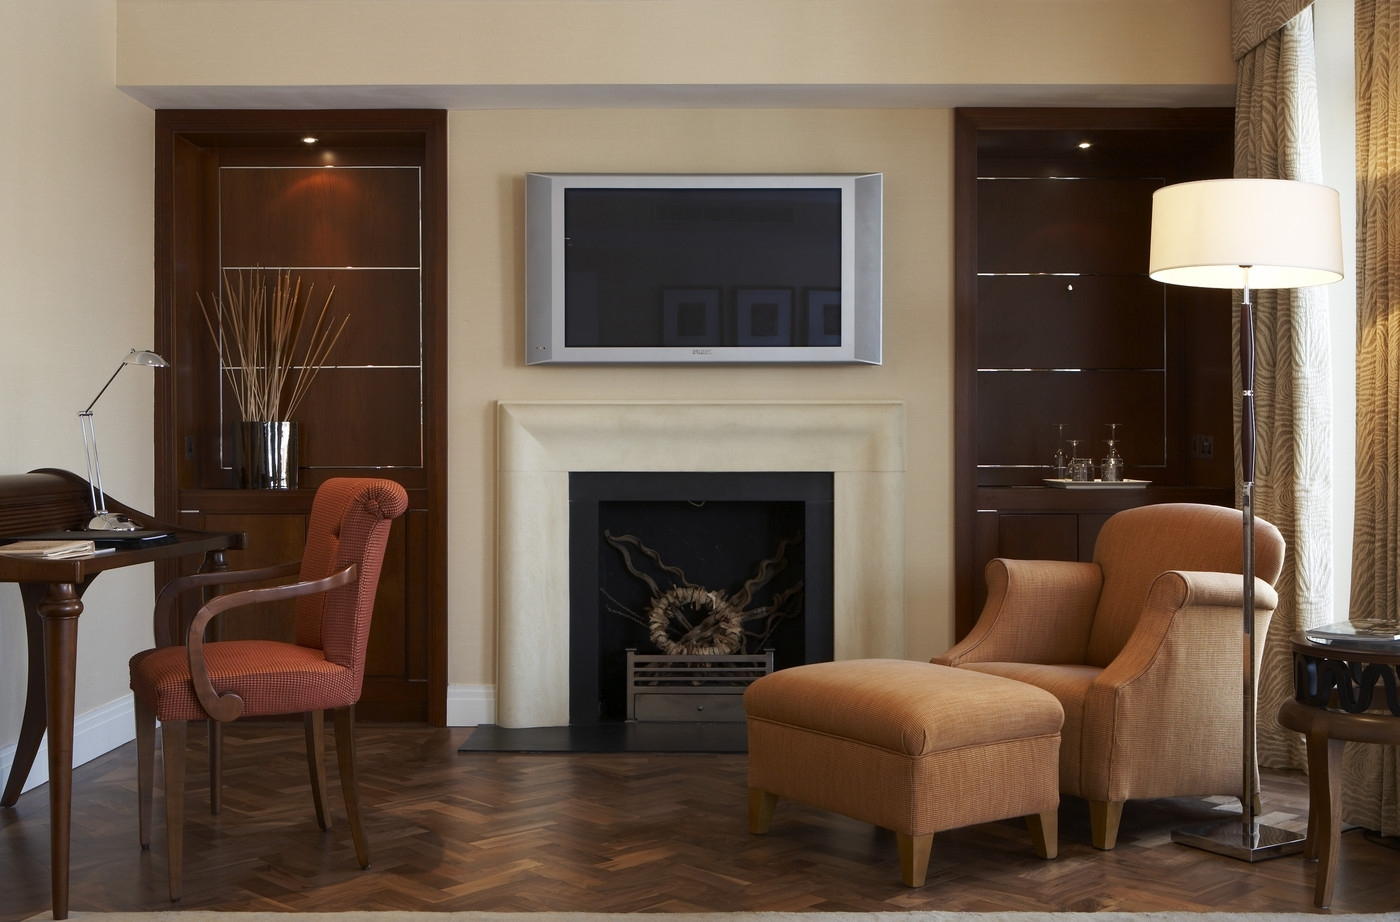 Chimney Breast Photos, Design, Ideas, Remodel, And Decor Lonny 30+ Living Room Chimney Breast Inspirations